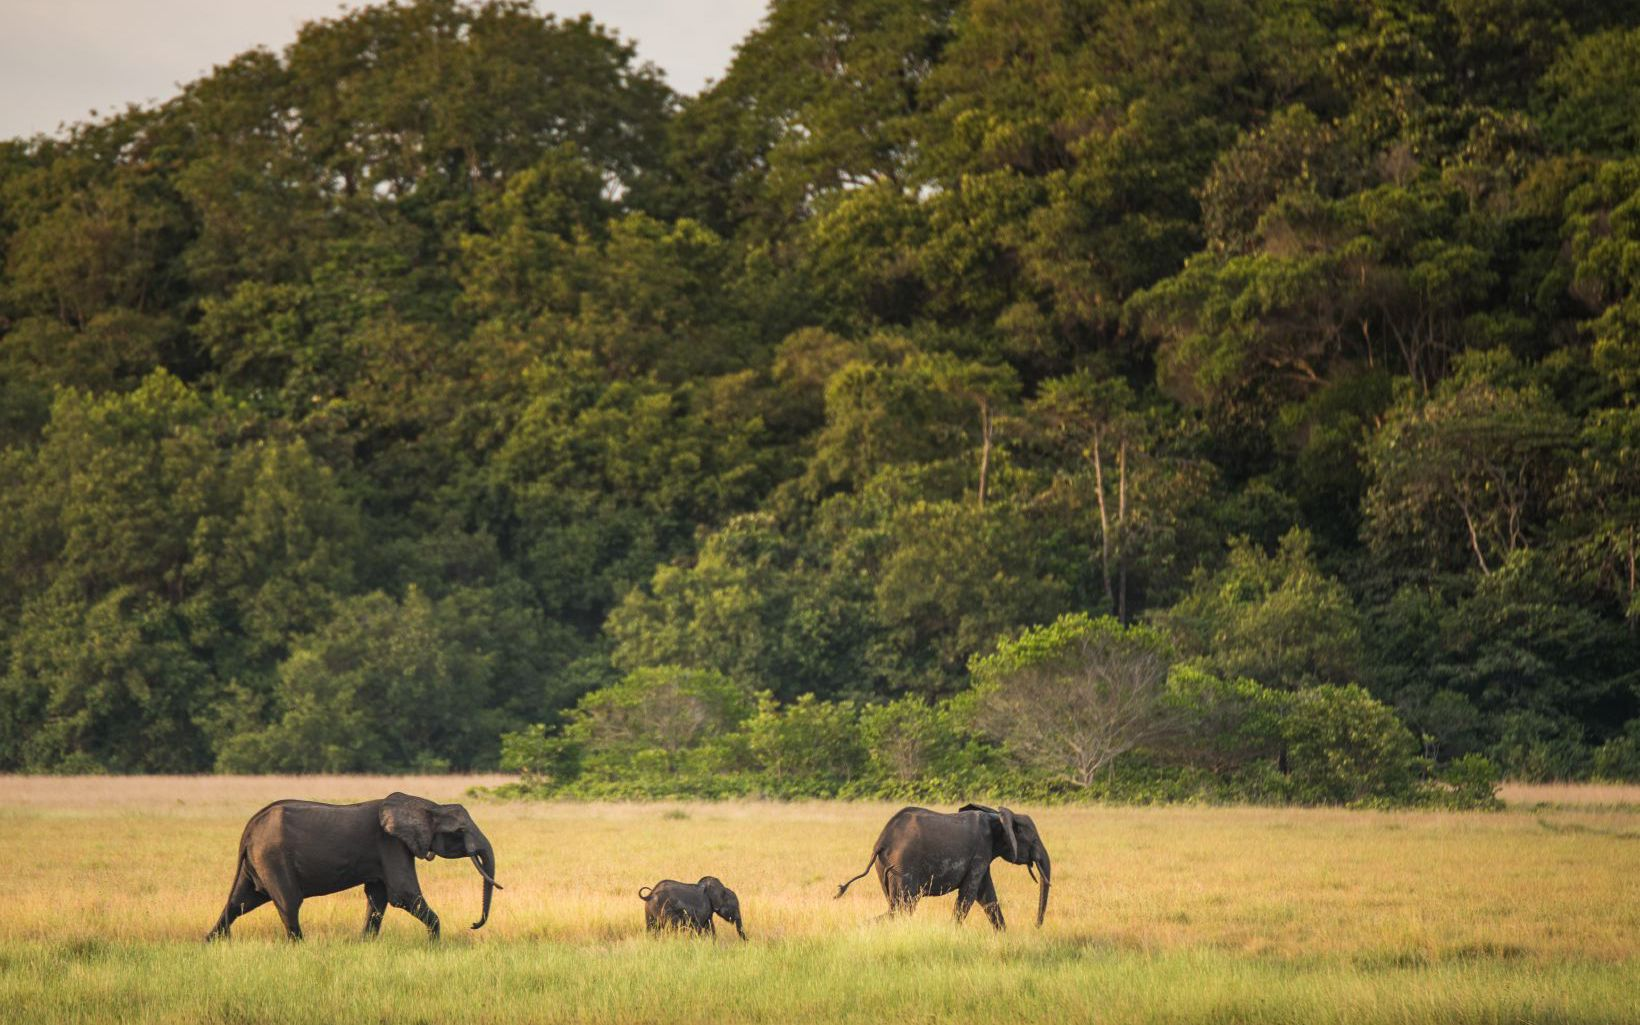 gabon elephants_940x600